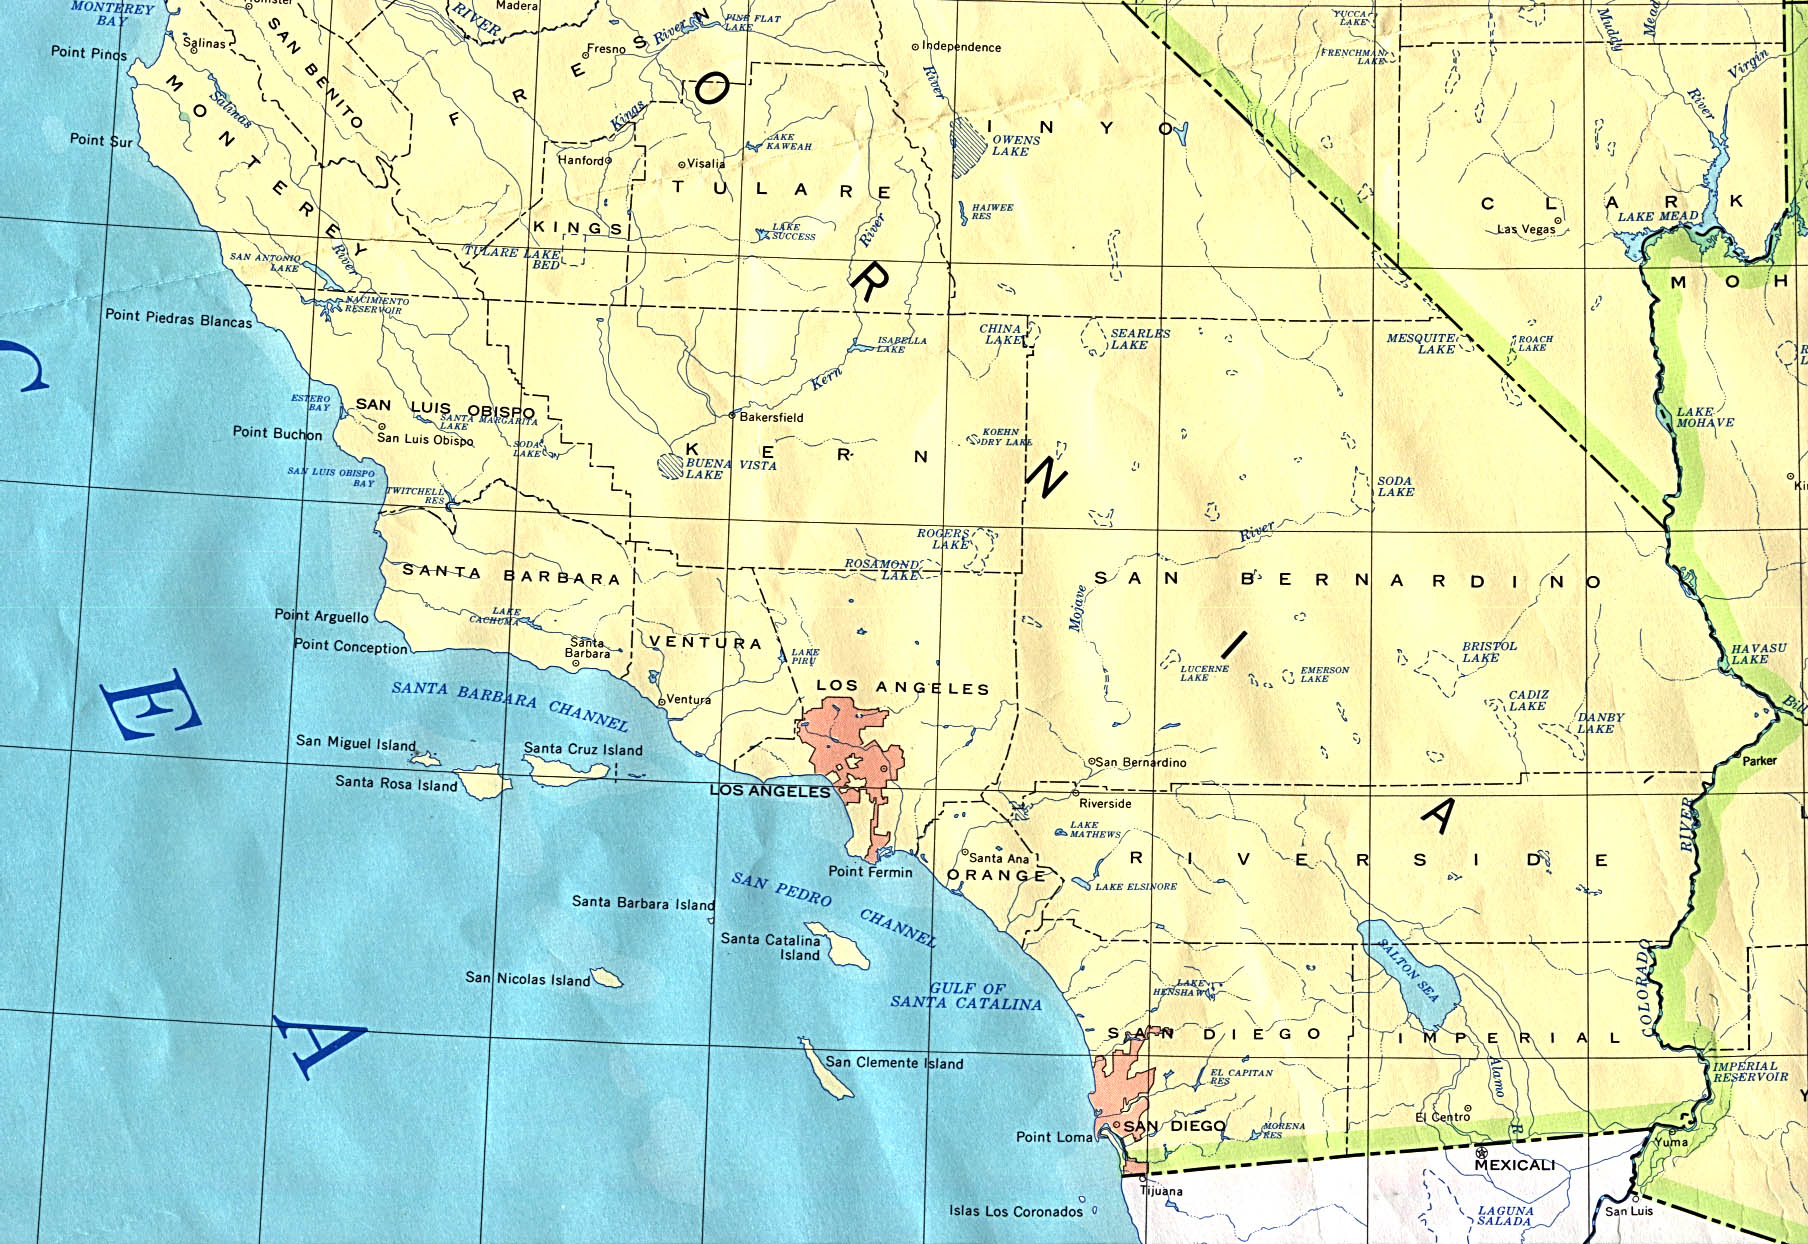 Printable Map Of Southern California - Klipy - Southern California Map Printable